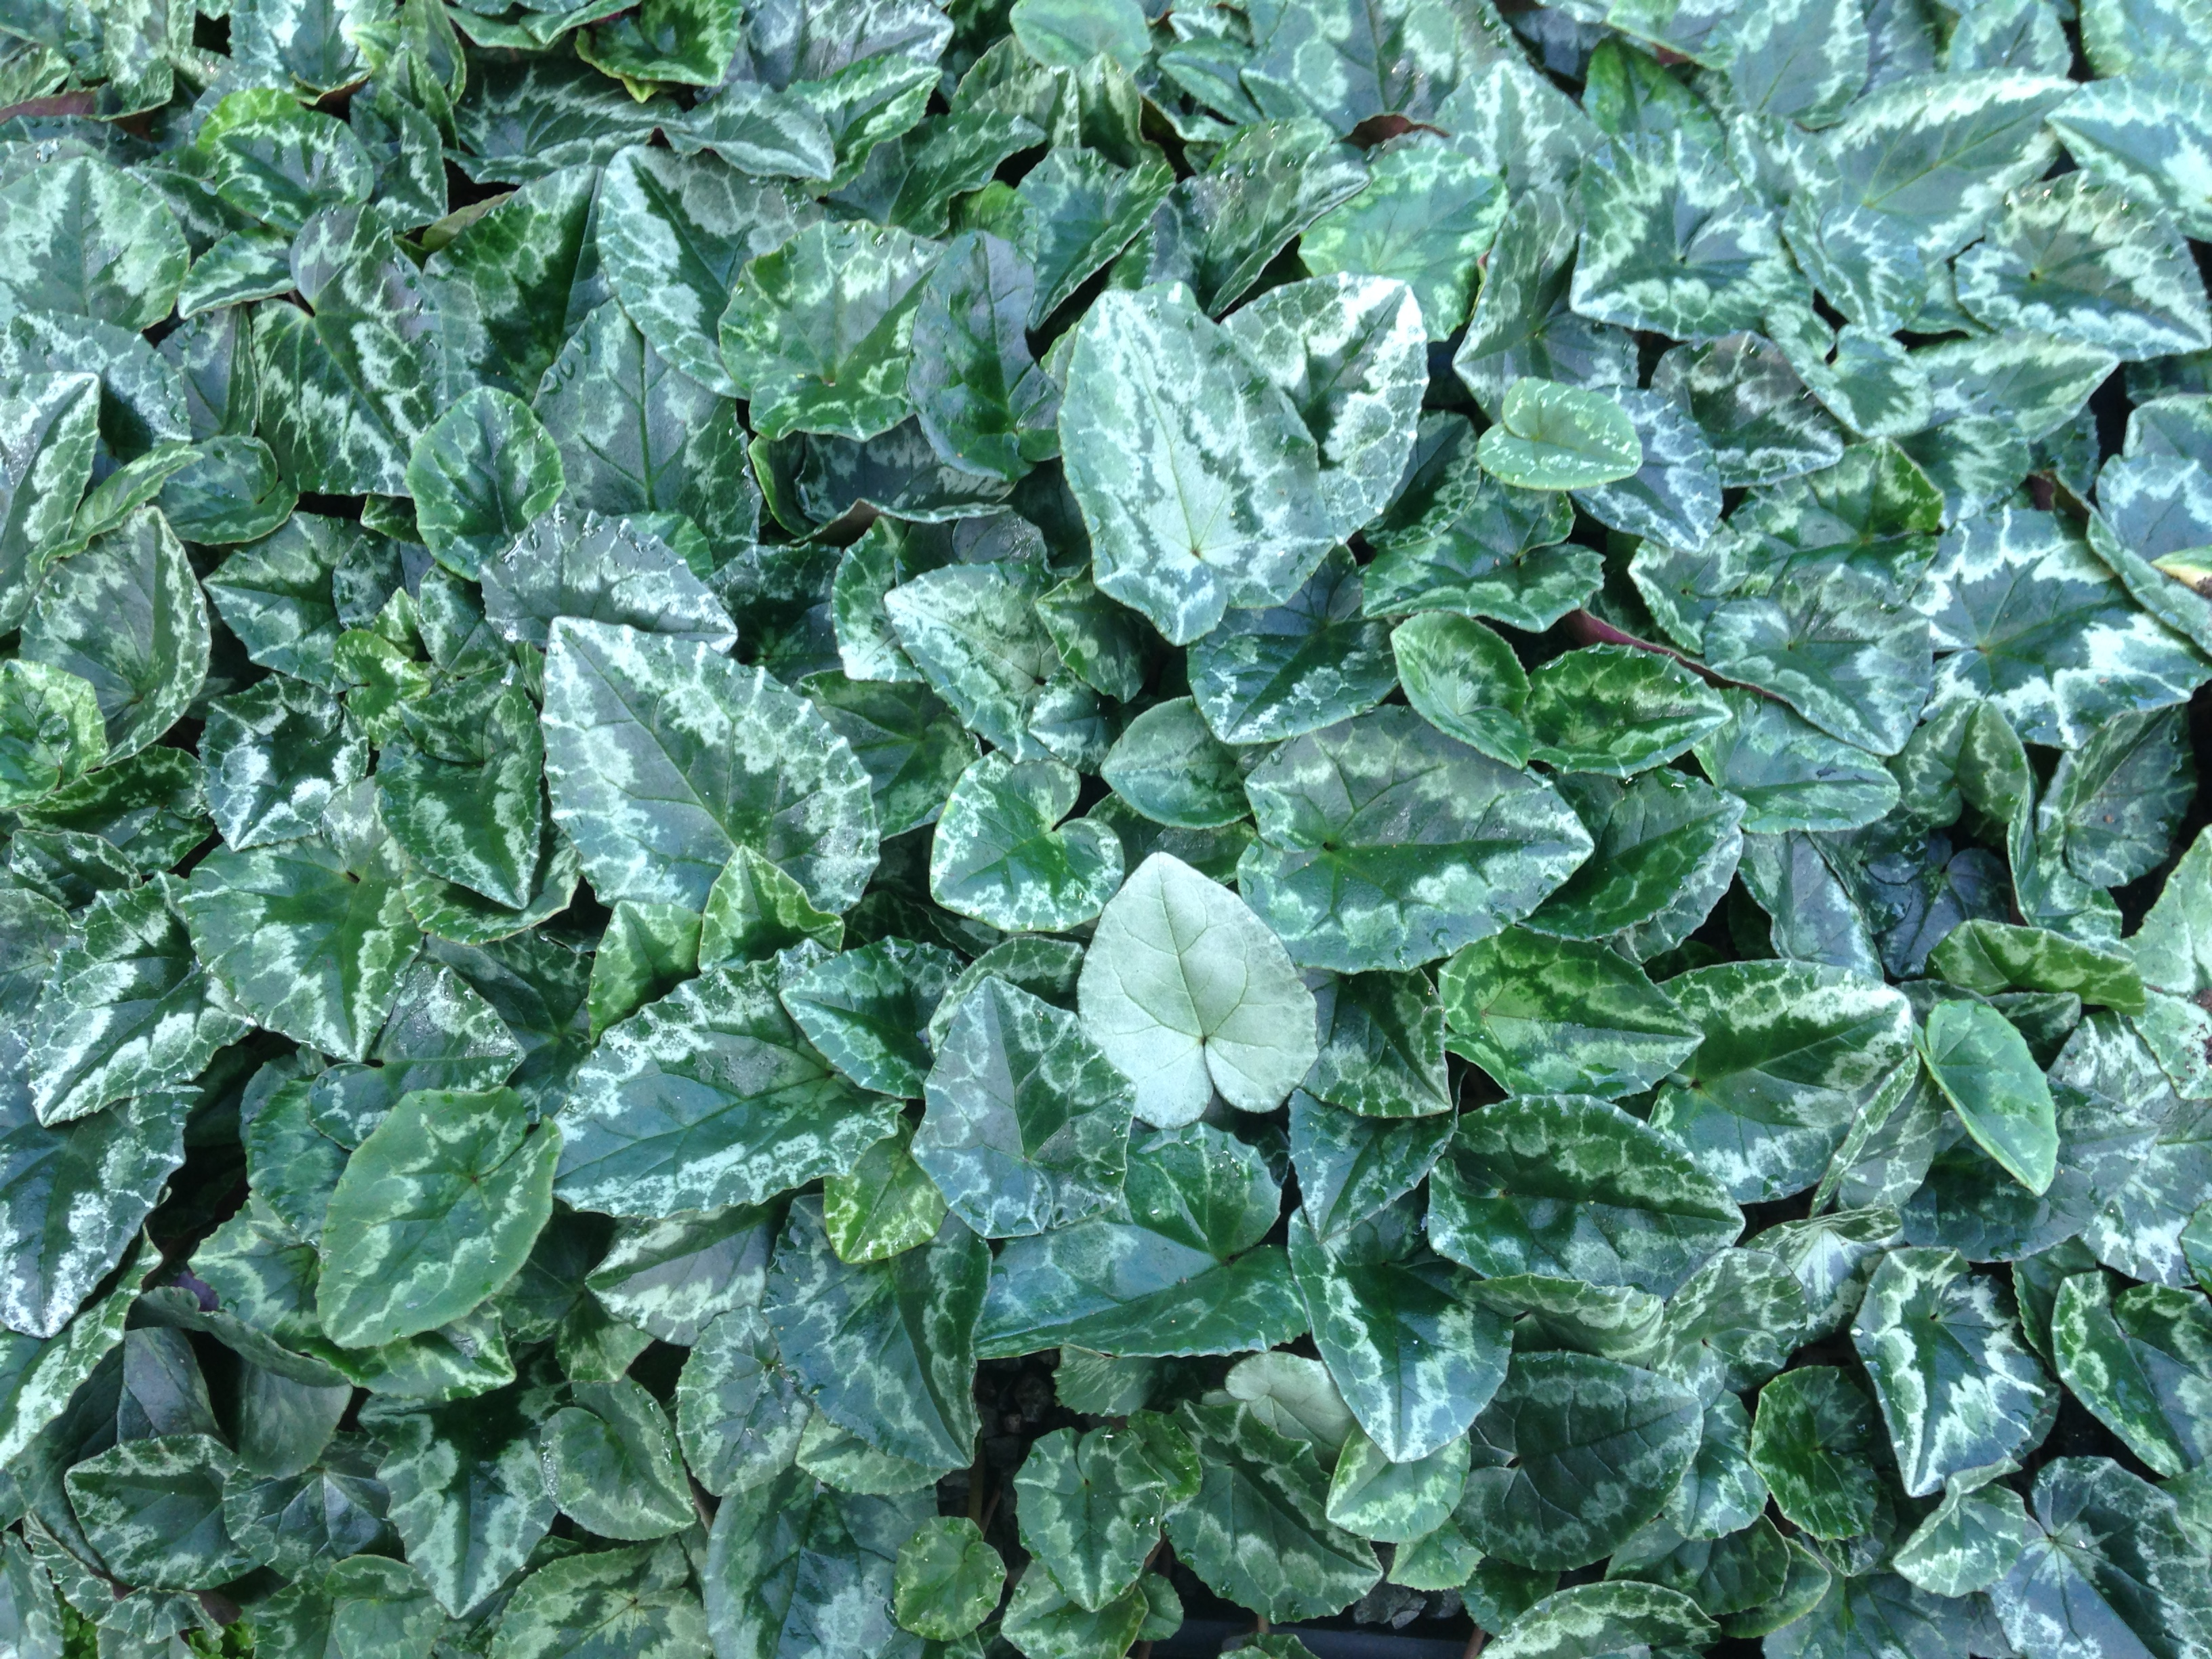 Cyclamen Hederifolium variegated ivy-shaped, grey-green marbled leaves